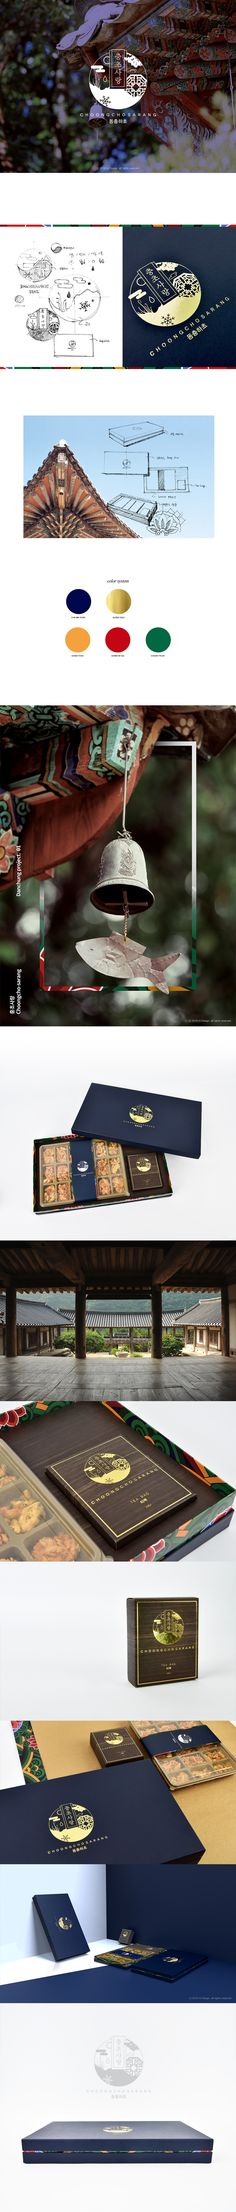 age design : Cordyceps package is designed to reinterpret 'Korean image' into a modern sense with 'dancheong' which is traditional multicolored paintwork on wooden buildings. When you open the package box, you can see the tree. Ci Design, Logo Design, Brand Packaging, Packaging Design, Behance Logo, Typography Logo, Logos, Korean Image, Korean Design